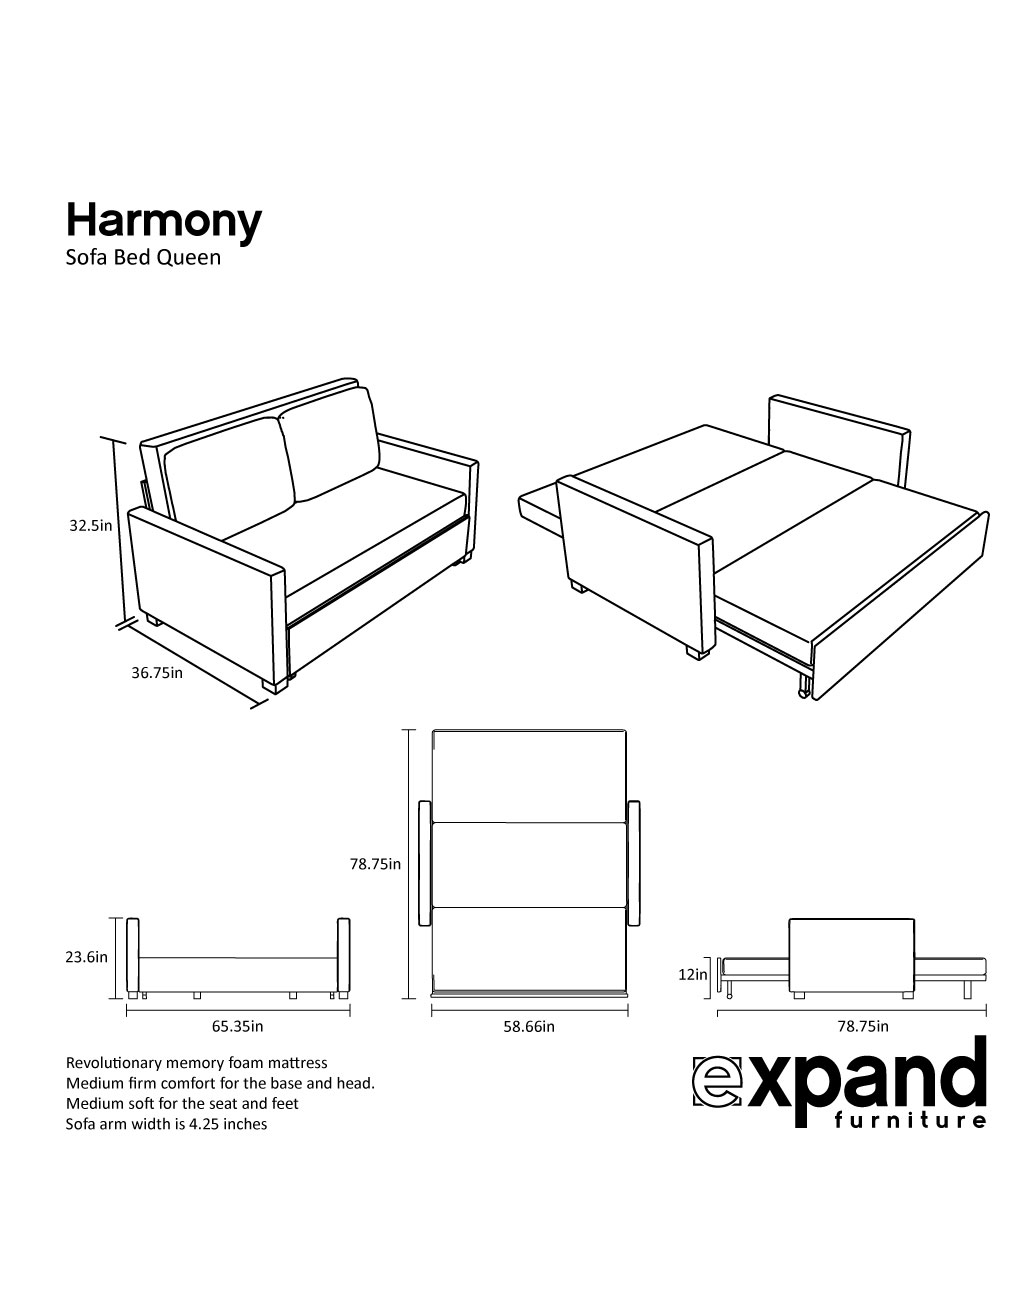 Harmony - Queen Size Memory Foam Sofa Bed | Expand ...